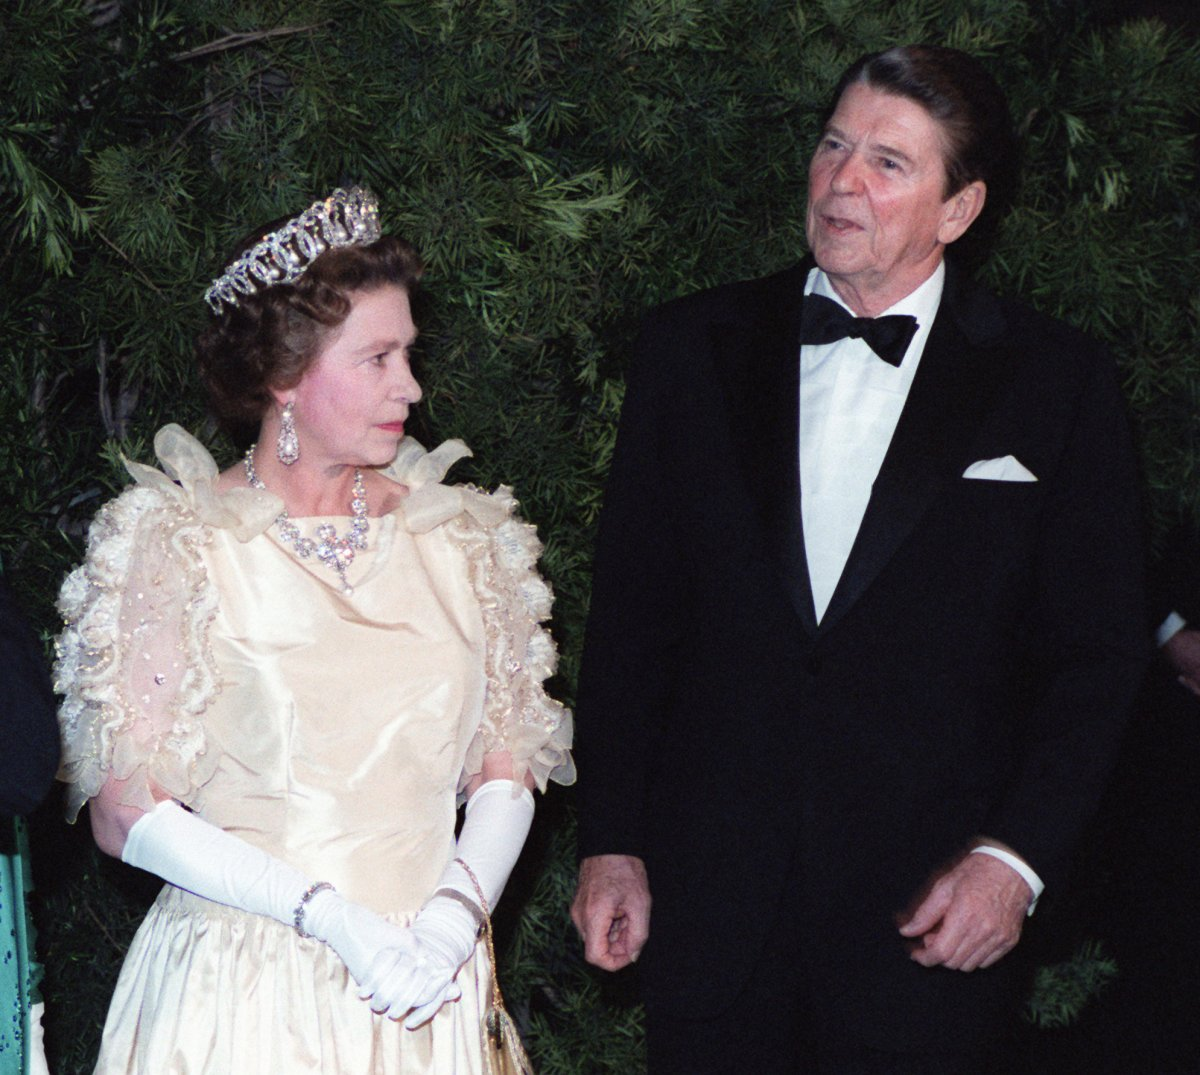 President and Mrs. Reagan attend a state dinner with Queen Elizabeth II and Prince Philip